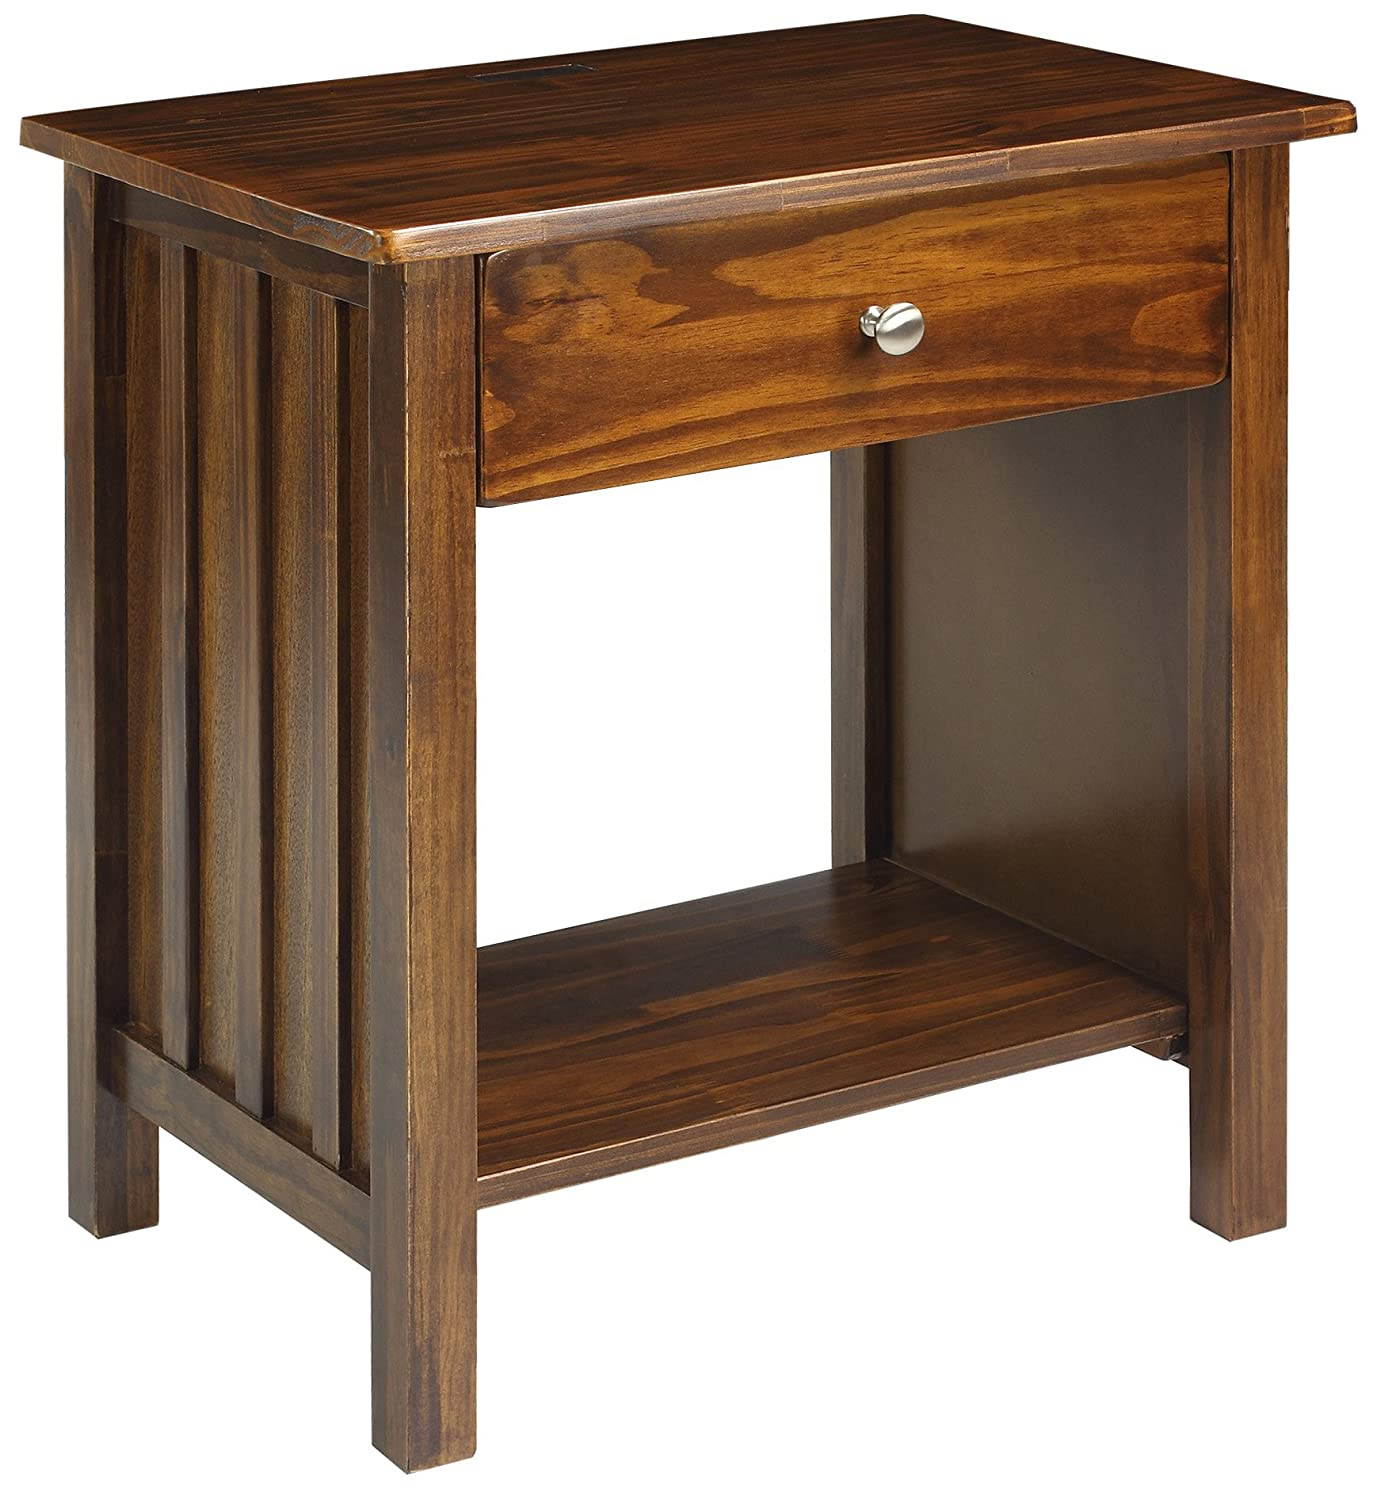 Casual Home 360-24 Vanderbilt Nightstand with USB Ports-Warm Brown